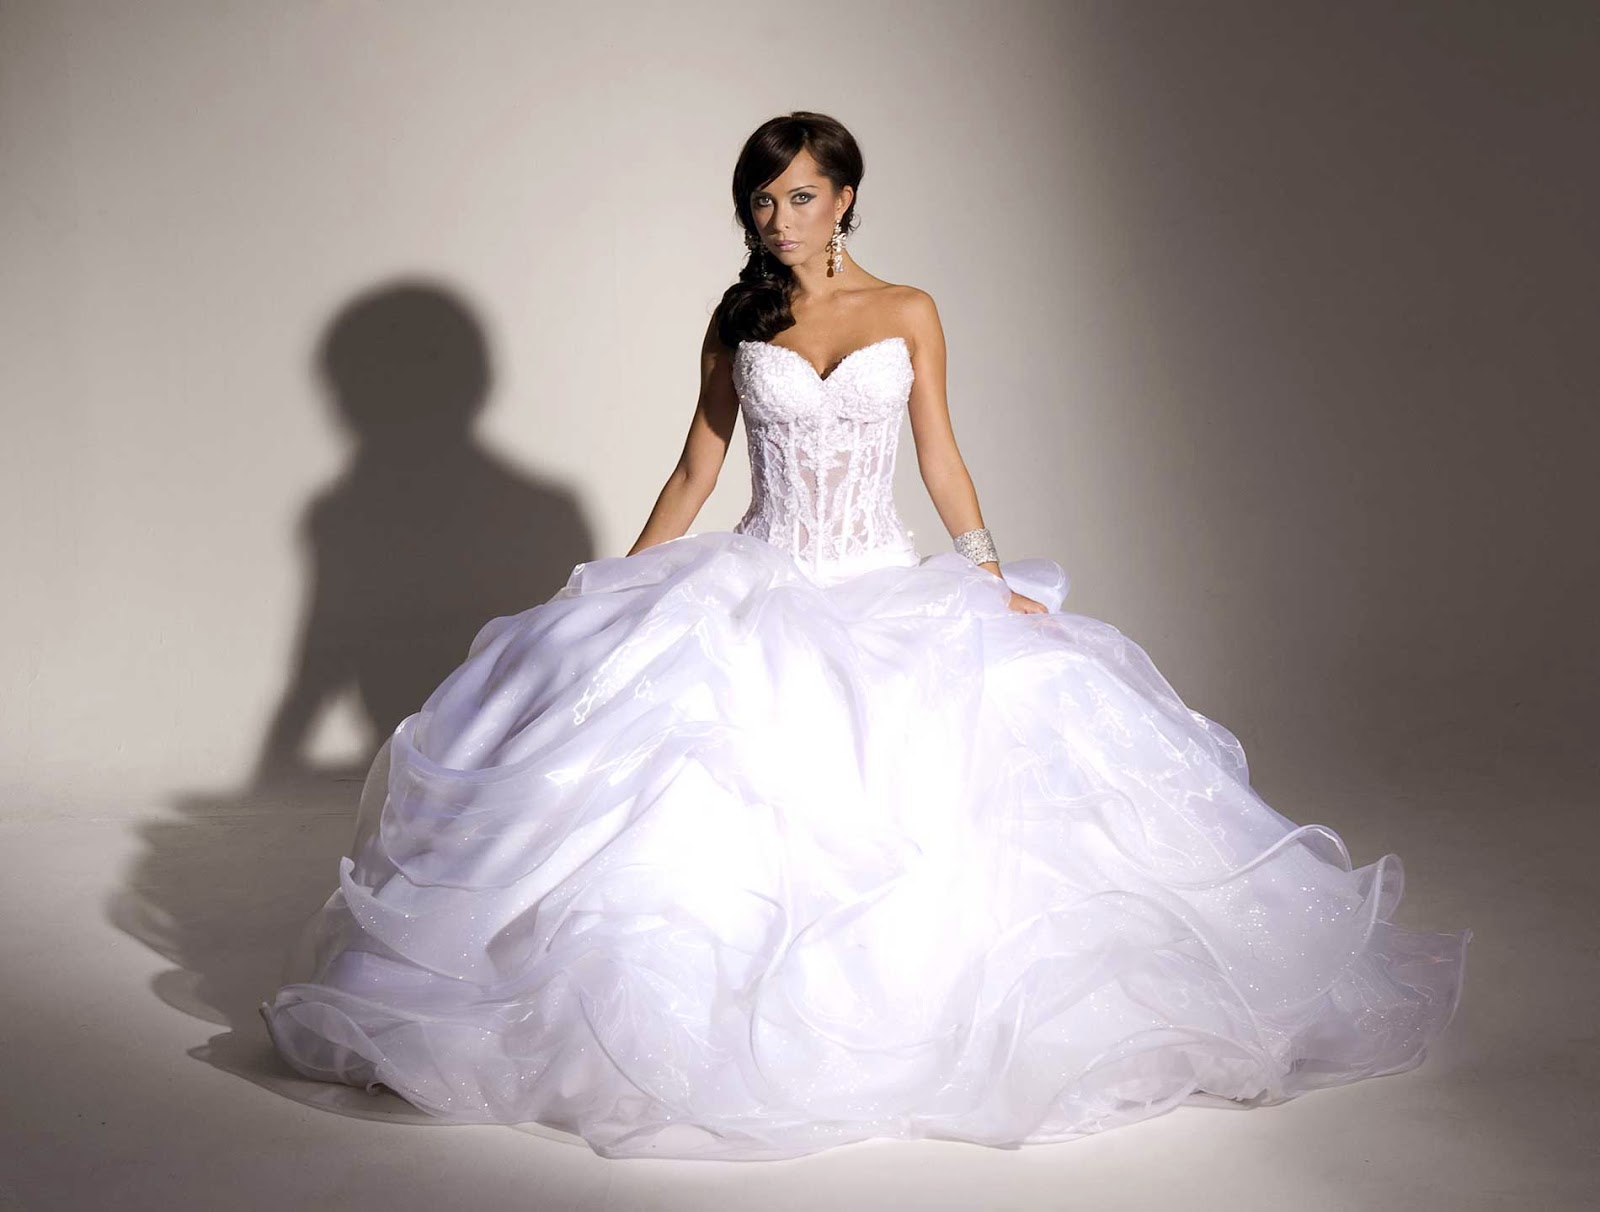 Puffy Wedding Dresses Photos Concepts Ideas